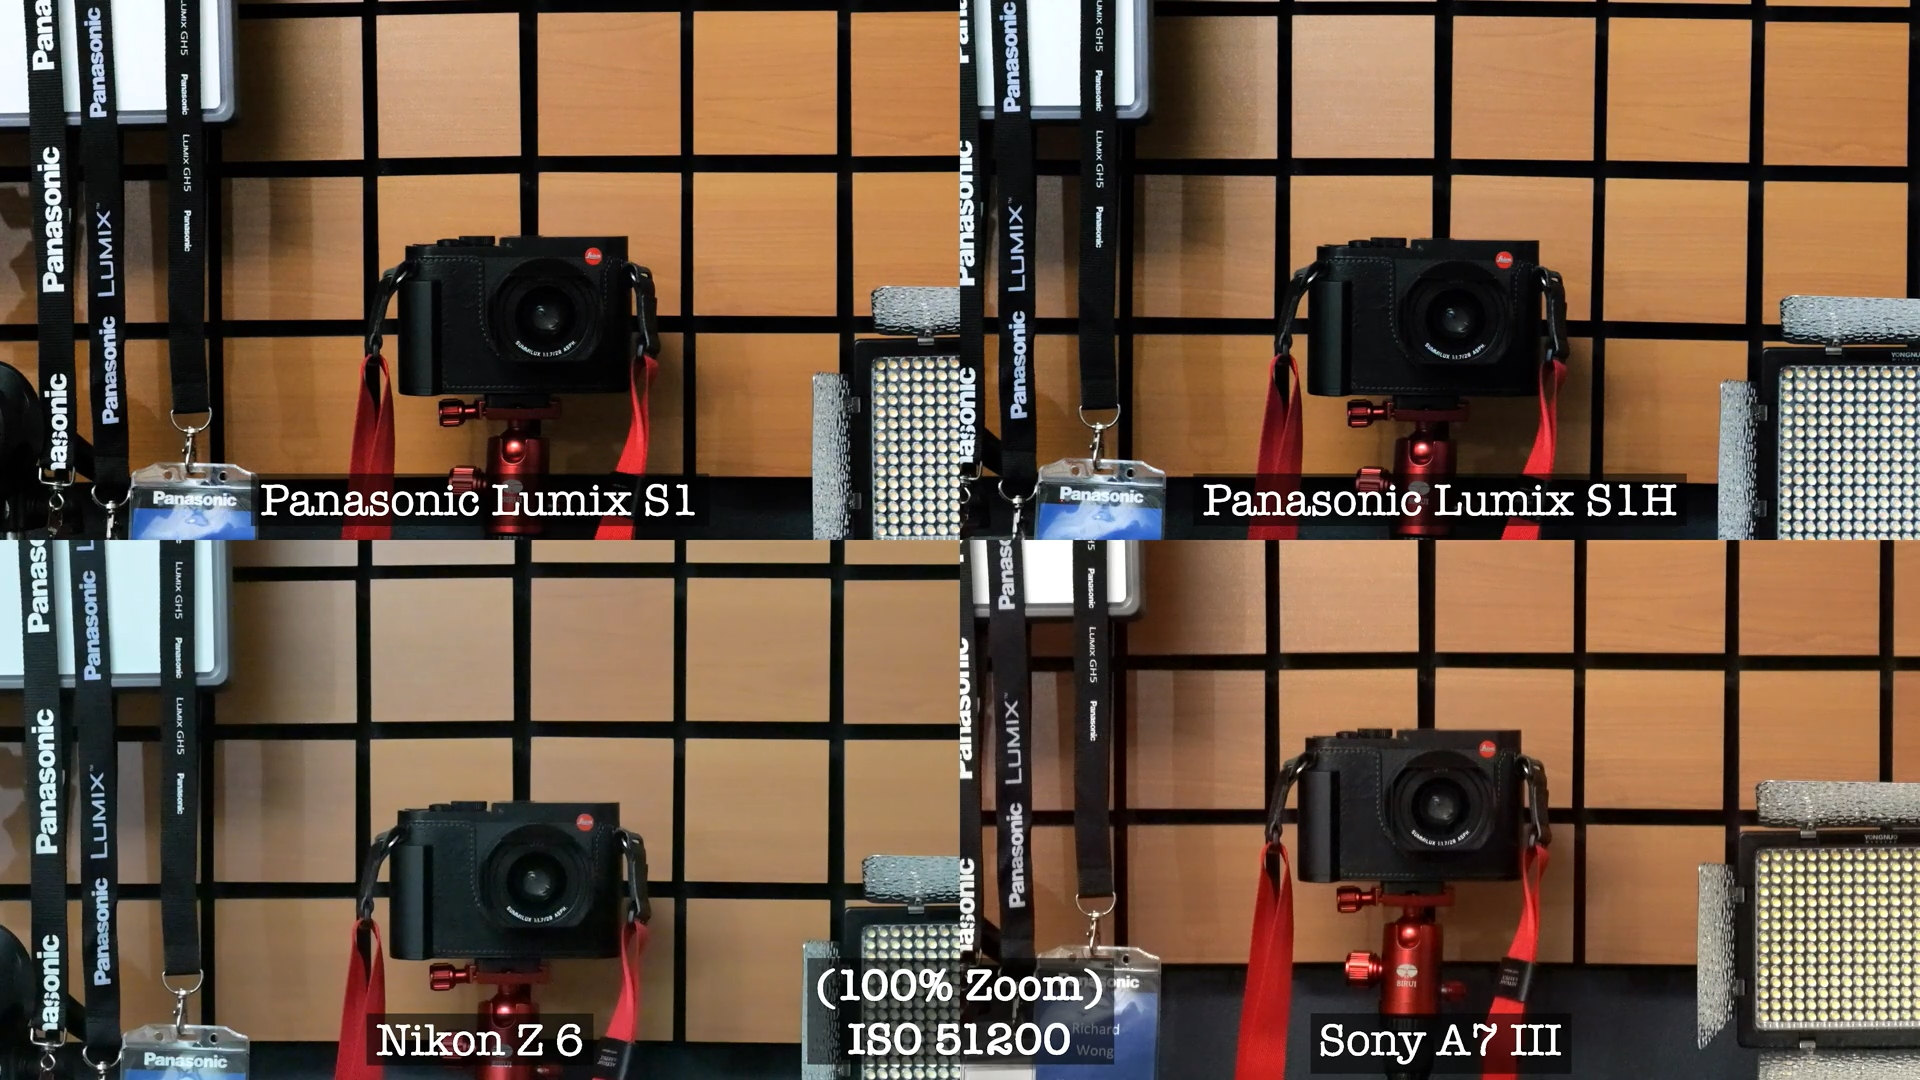 Panasonic Lumix S1H vs S1 vs Sony A7III vs Nikon Z6 Photo and Video quality comp.jpg